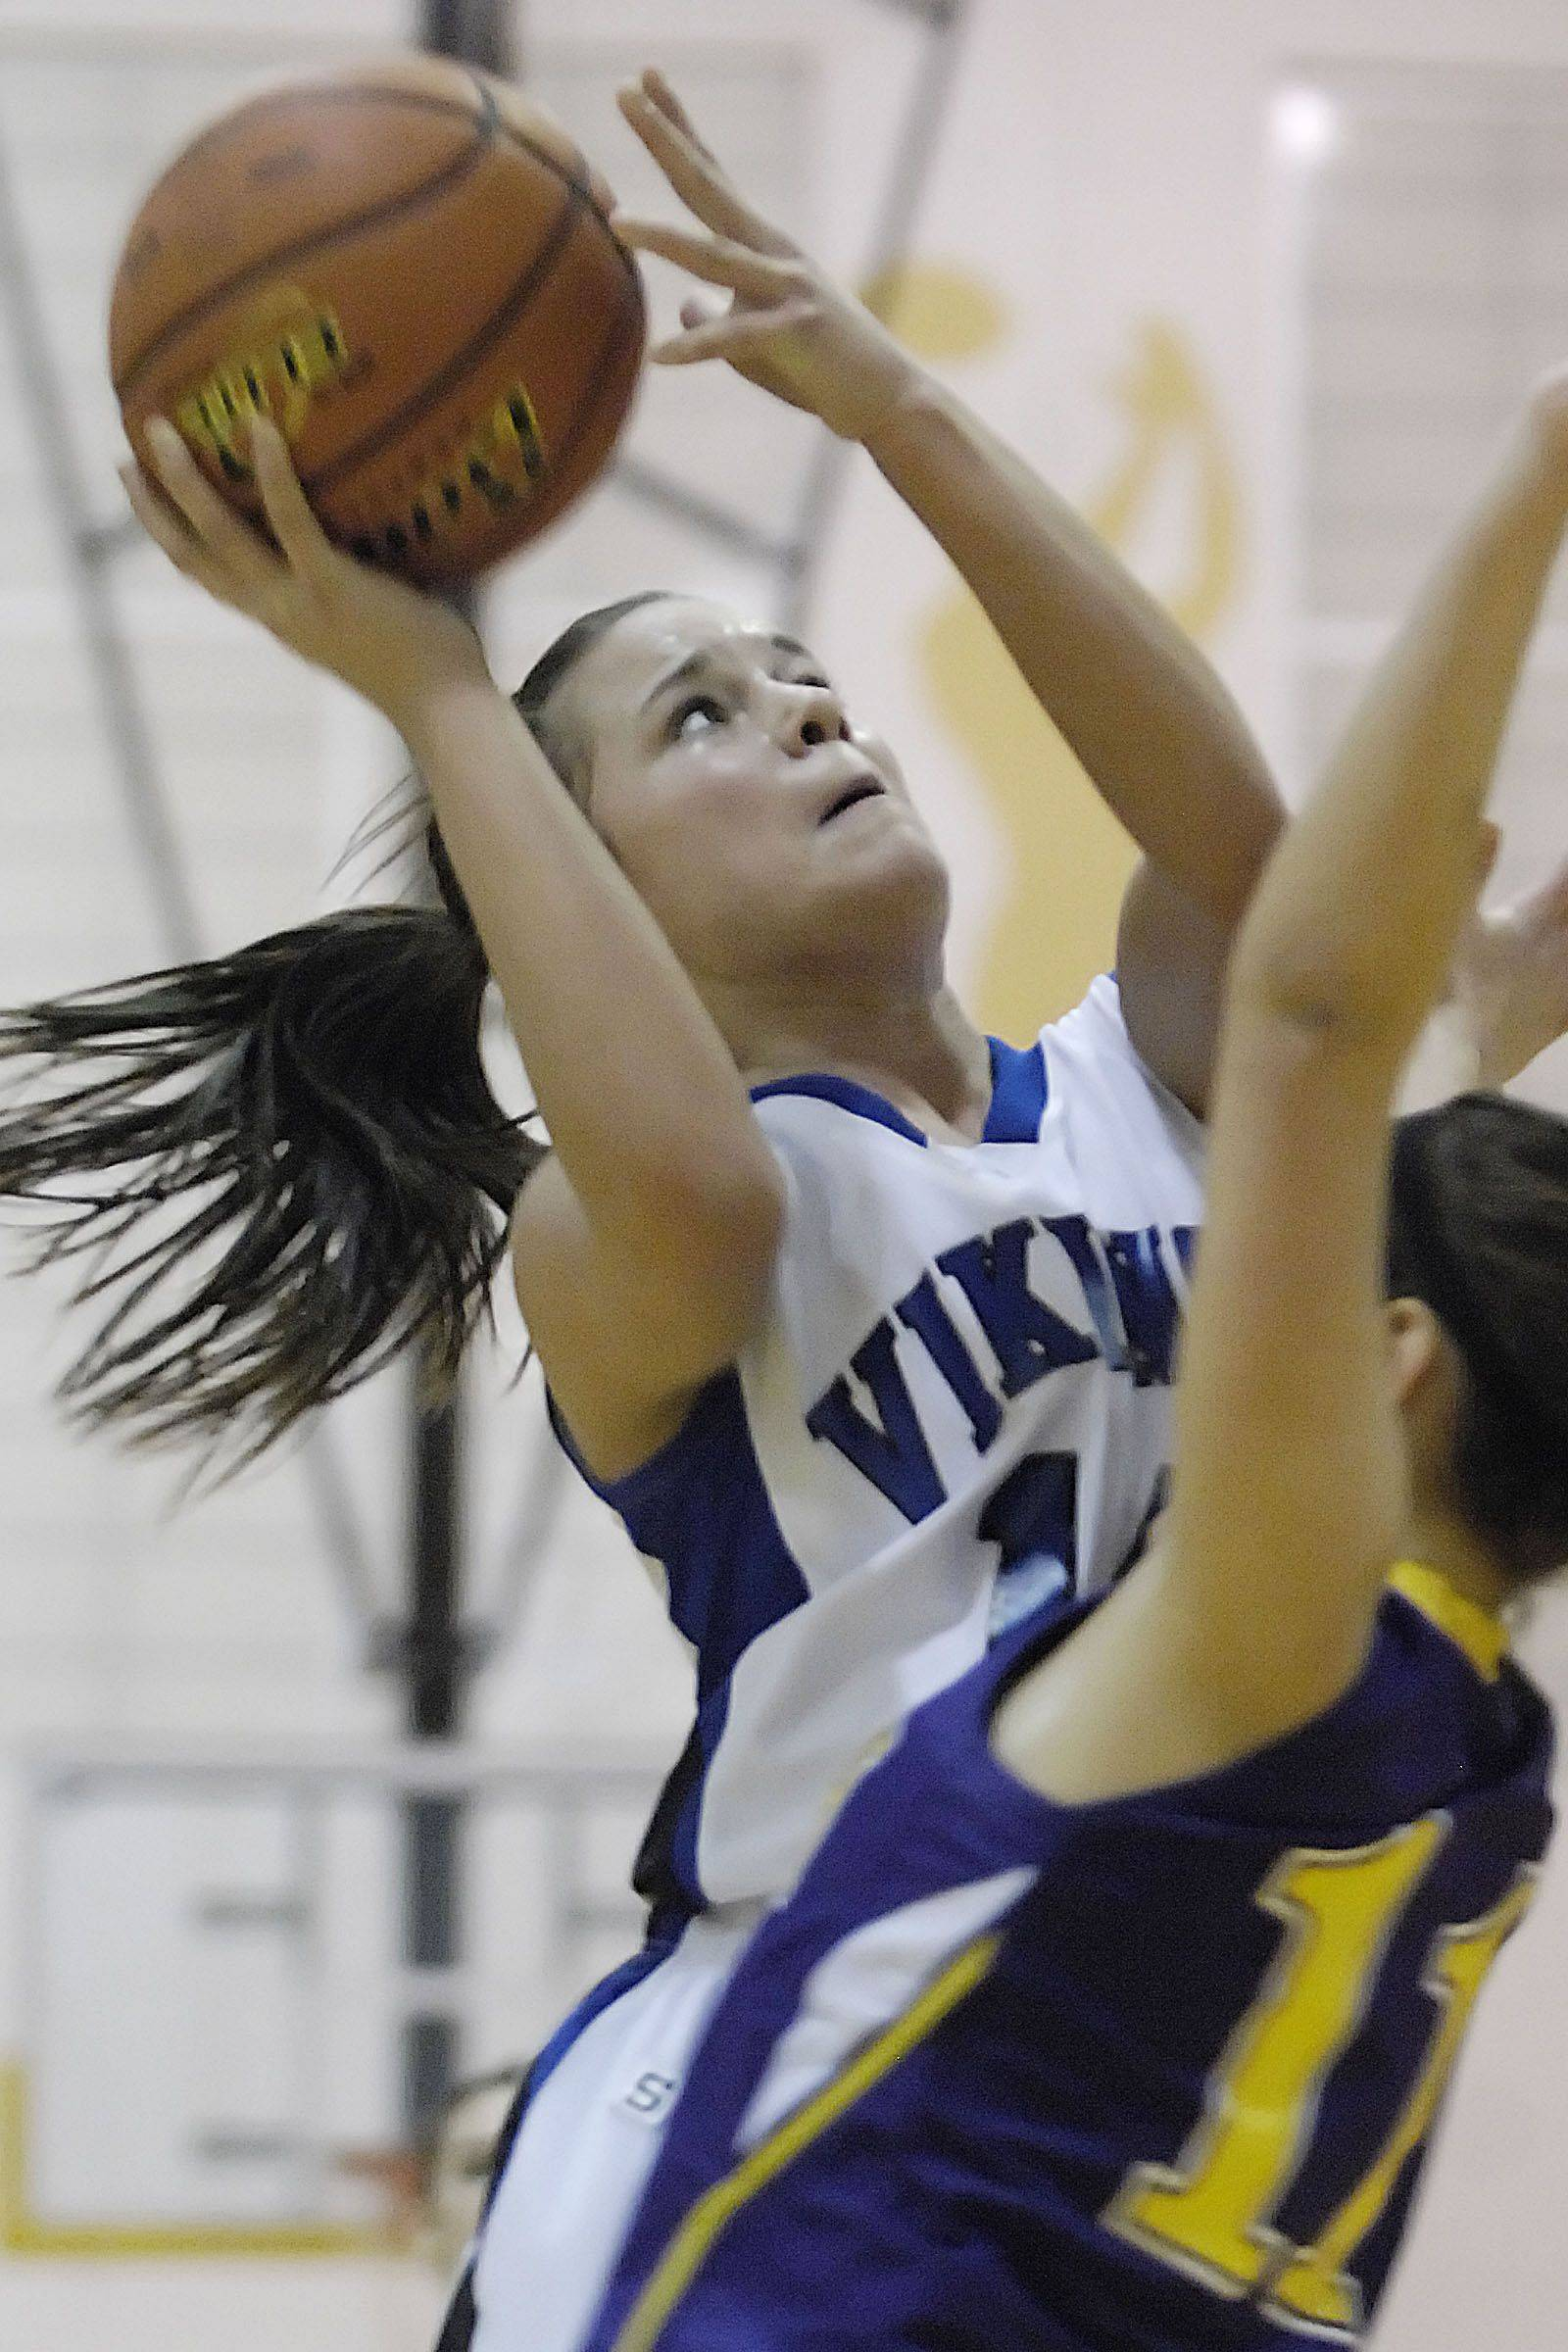 Geneva's Kat Yelle scores over Hononegah's Meg Macy Tuesday in the sectional semi final game in Algonquin.